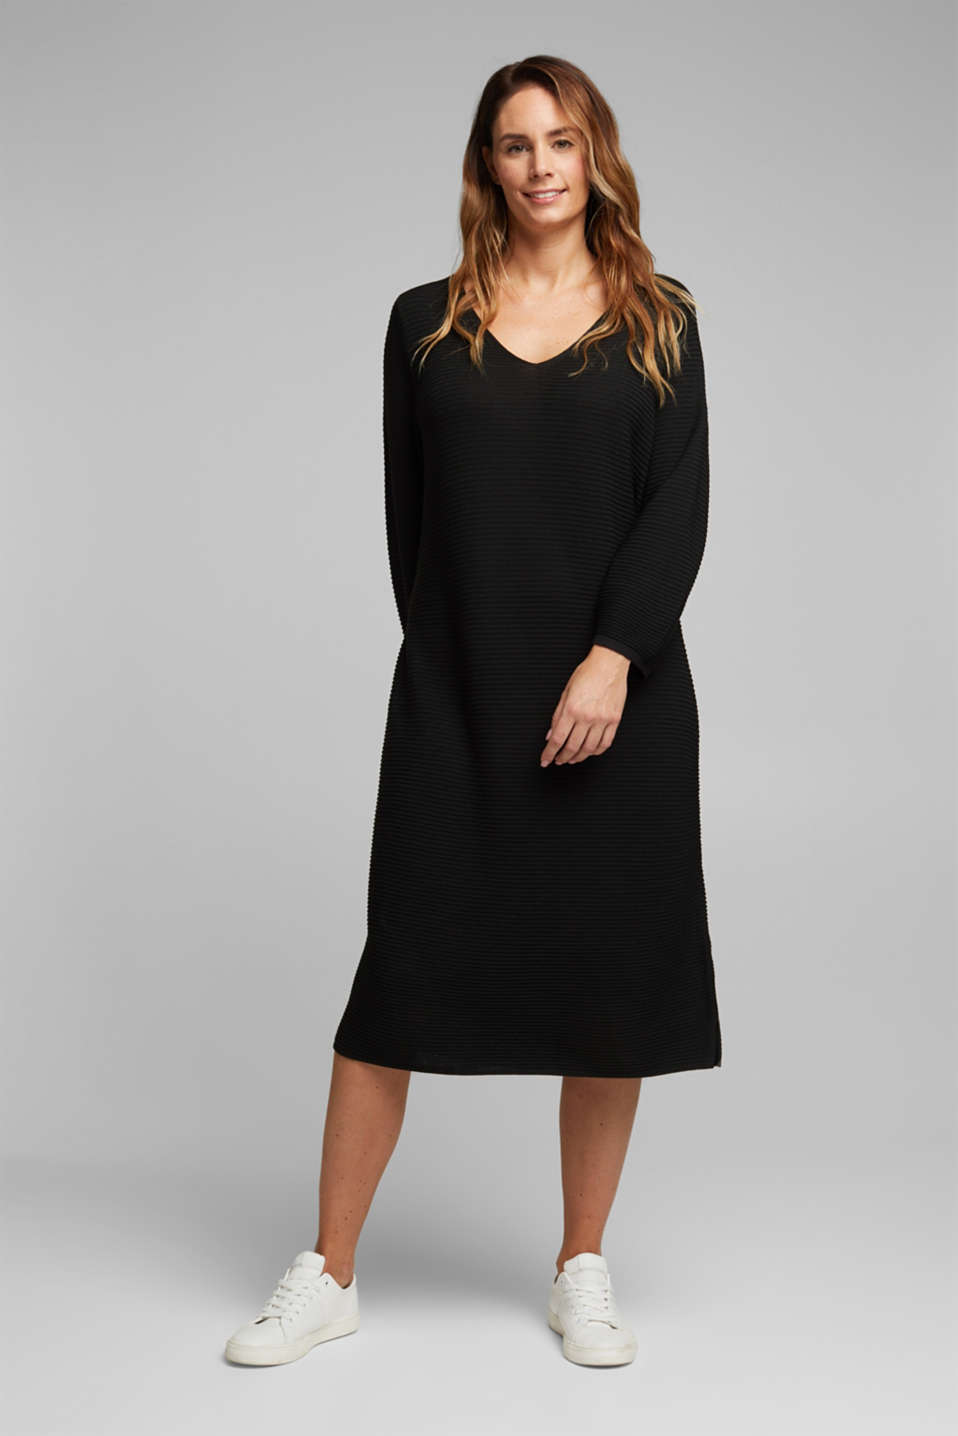 Esprit - CURVY rib knit midi dress